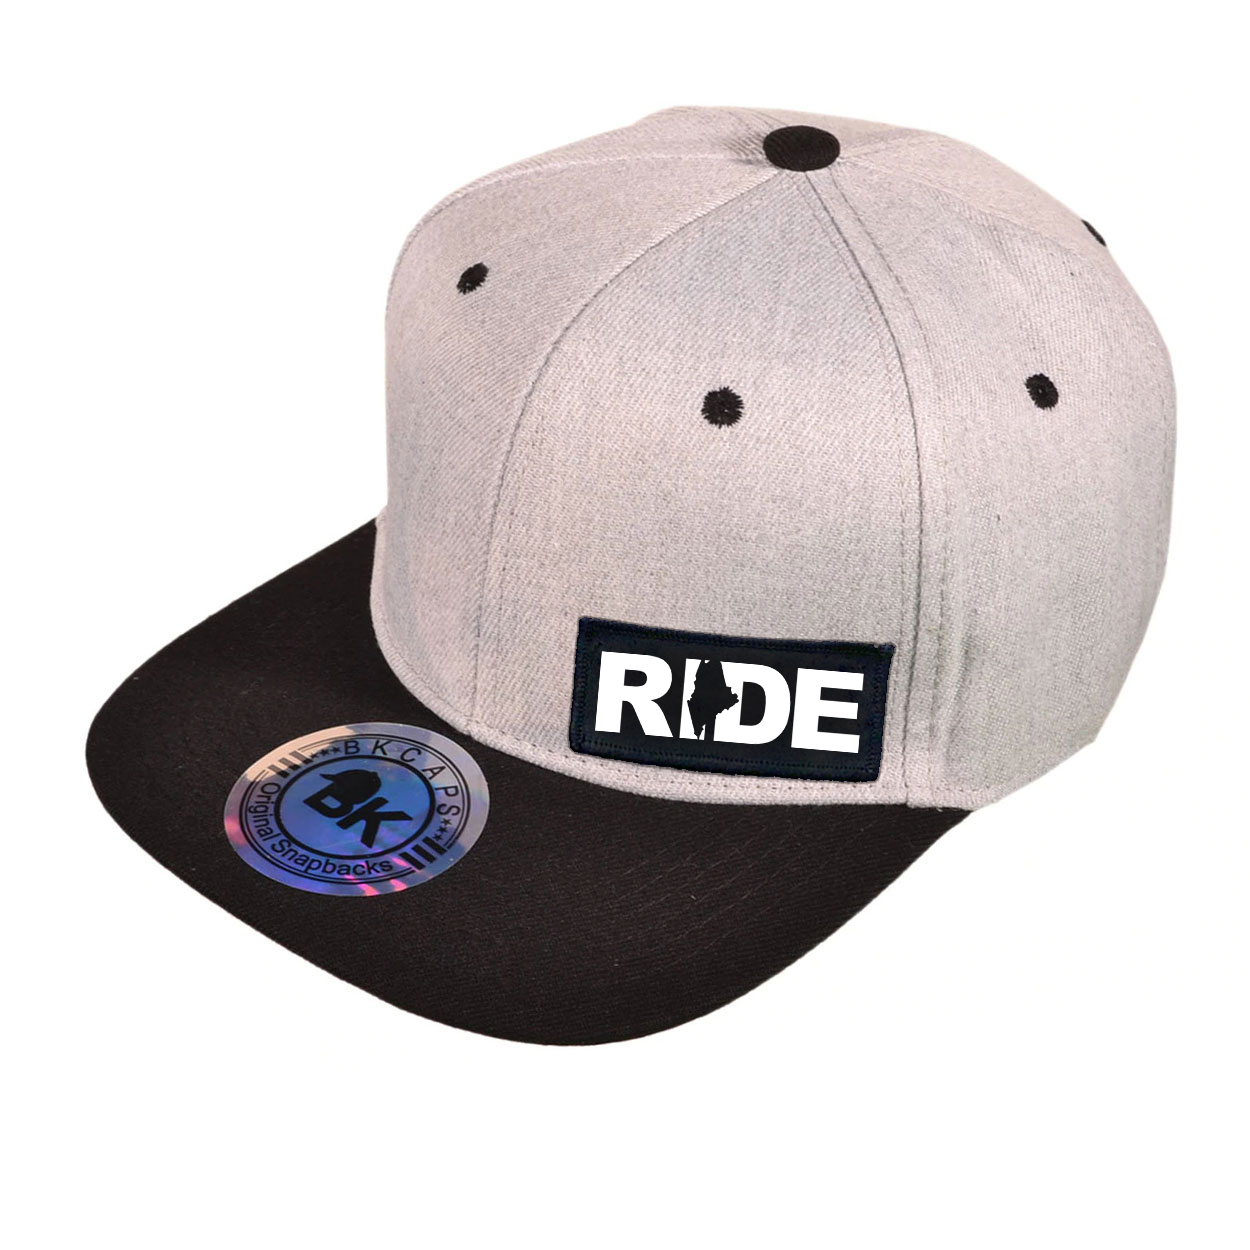 Ride Maine Night Out Woven Patch Snapback Flat Brim Hat Heather Gray/Black (White Logo)